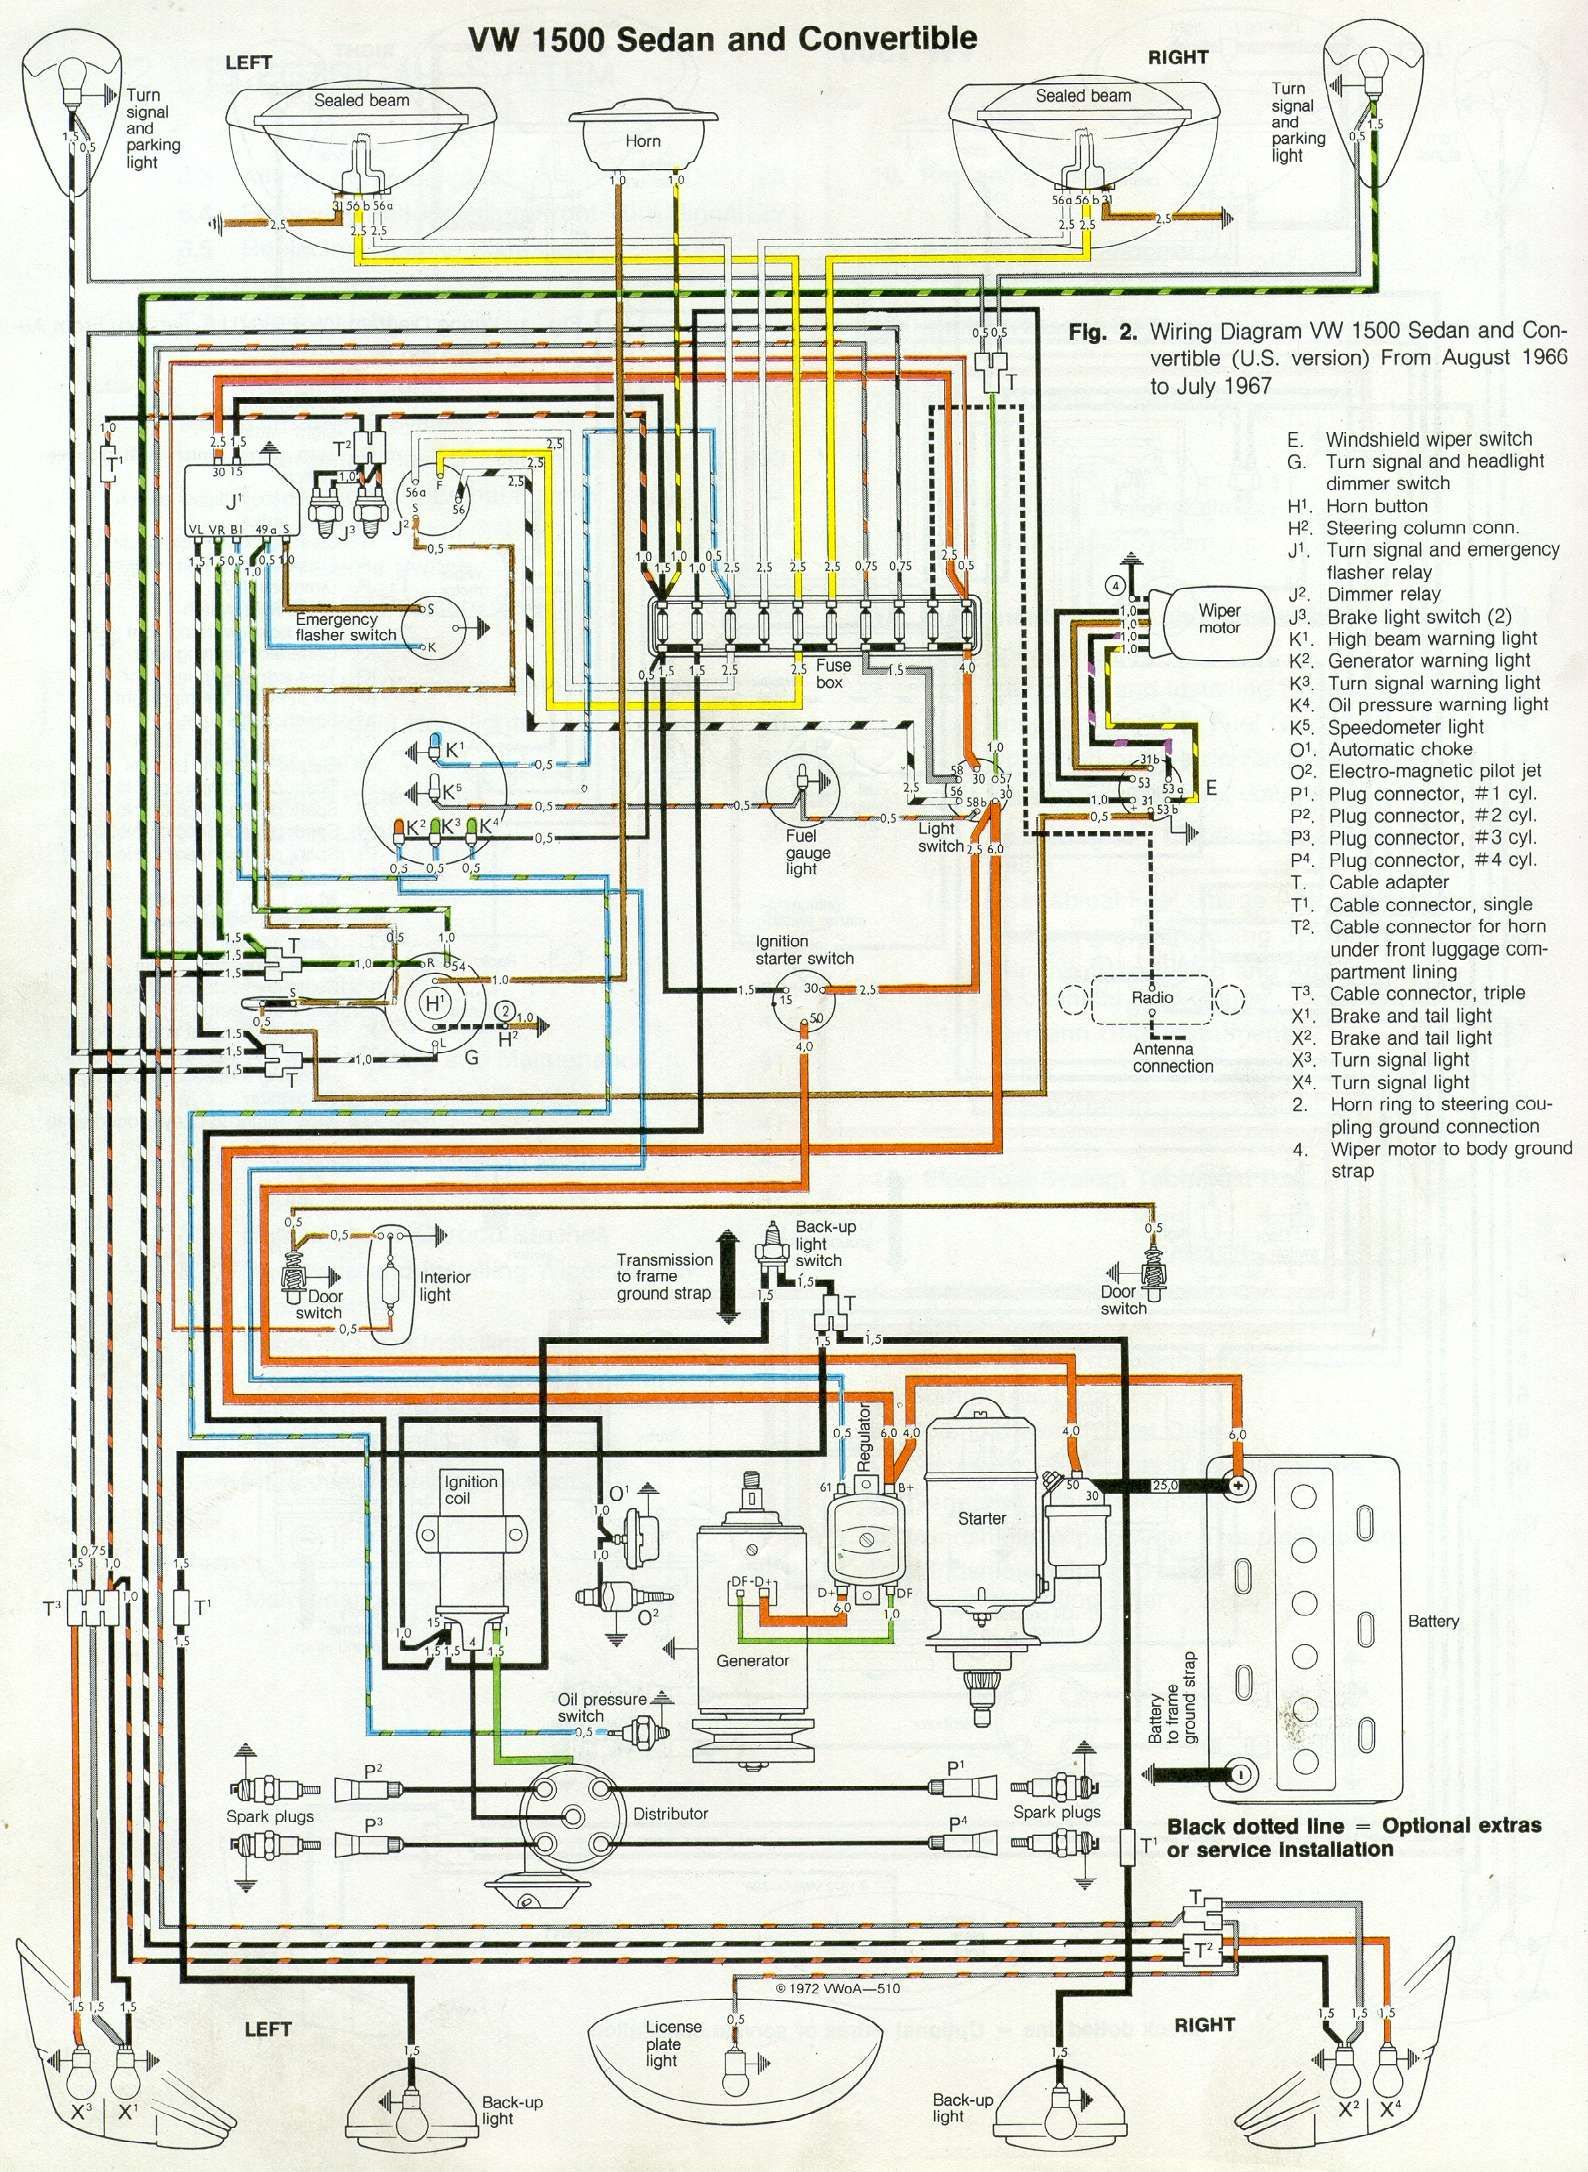 hight resolution of 1969 vw beetle wiring diagram wiring diagram experts1969 vw wiring diagram wiring diagram experts 1969 vw